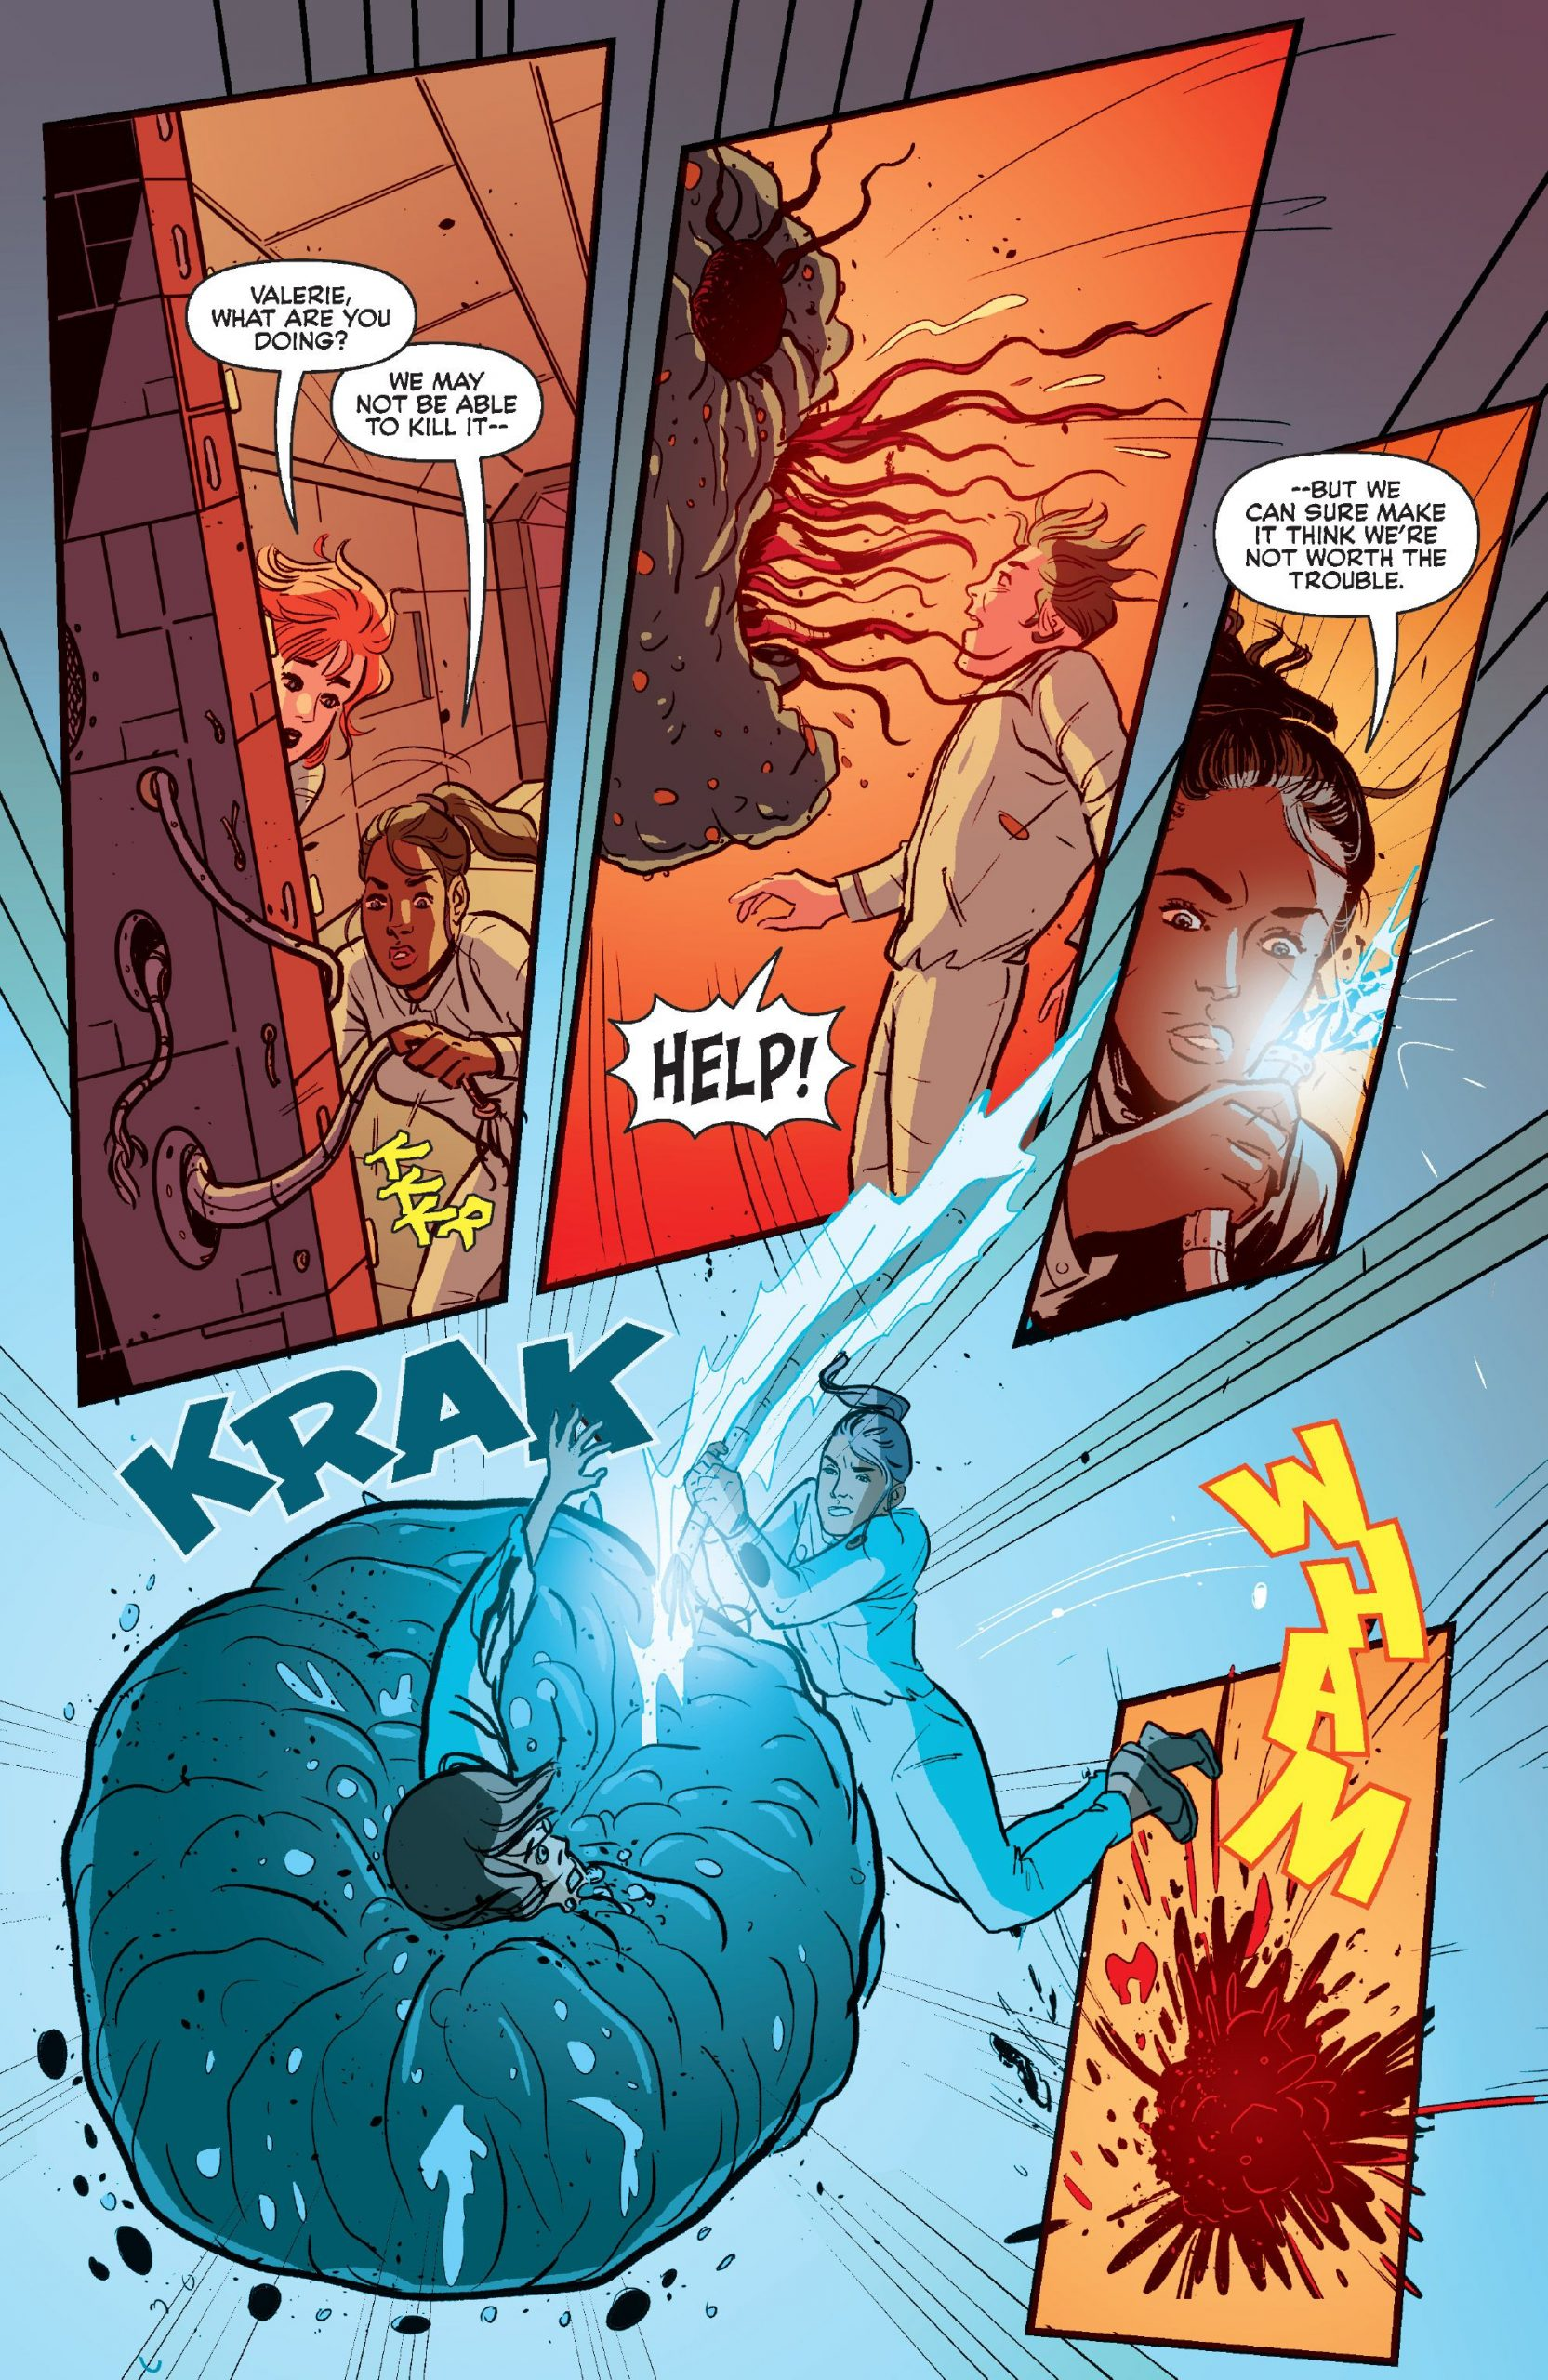 Valerie's bright idea to stop the alien before he kills again in Josie and the Pussycats in Space #3.